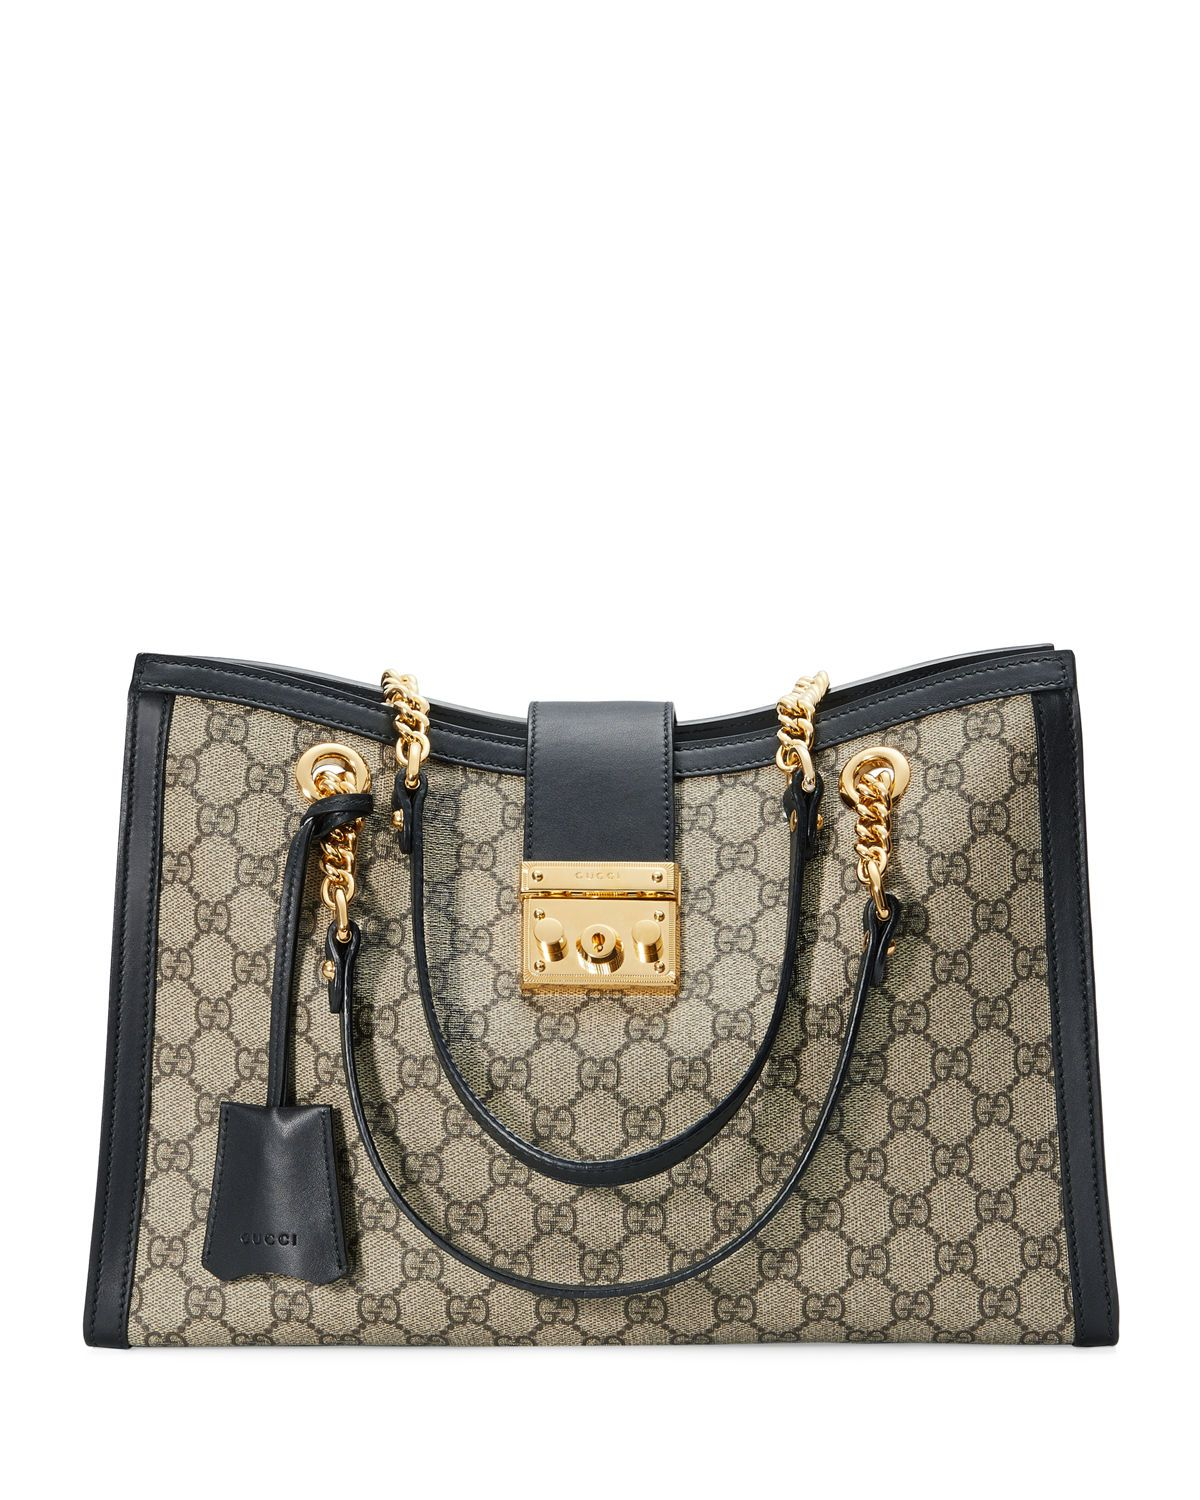 137c845923a3 Gucci Padlock GG Supreme Canvas Medium Shoulder Bag | Bags | Gucci ...